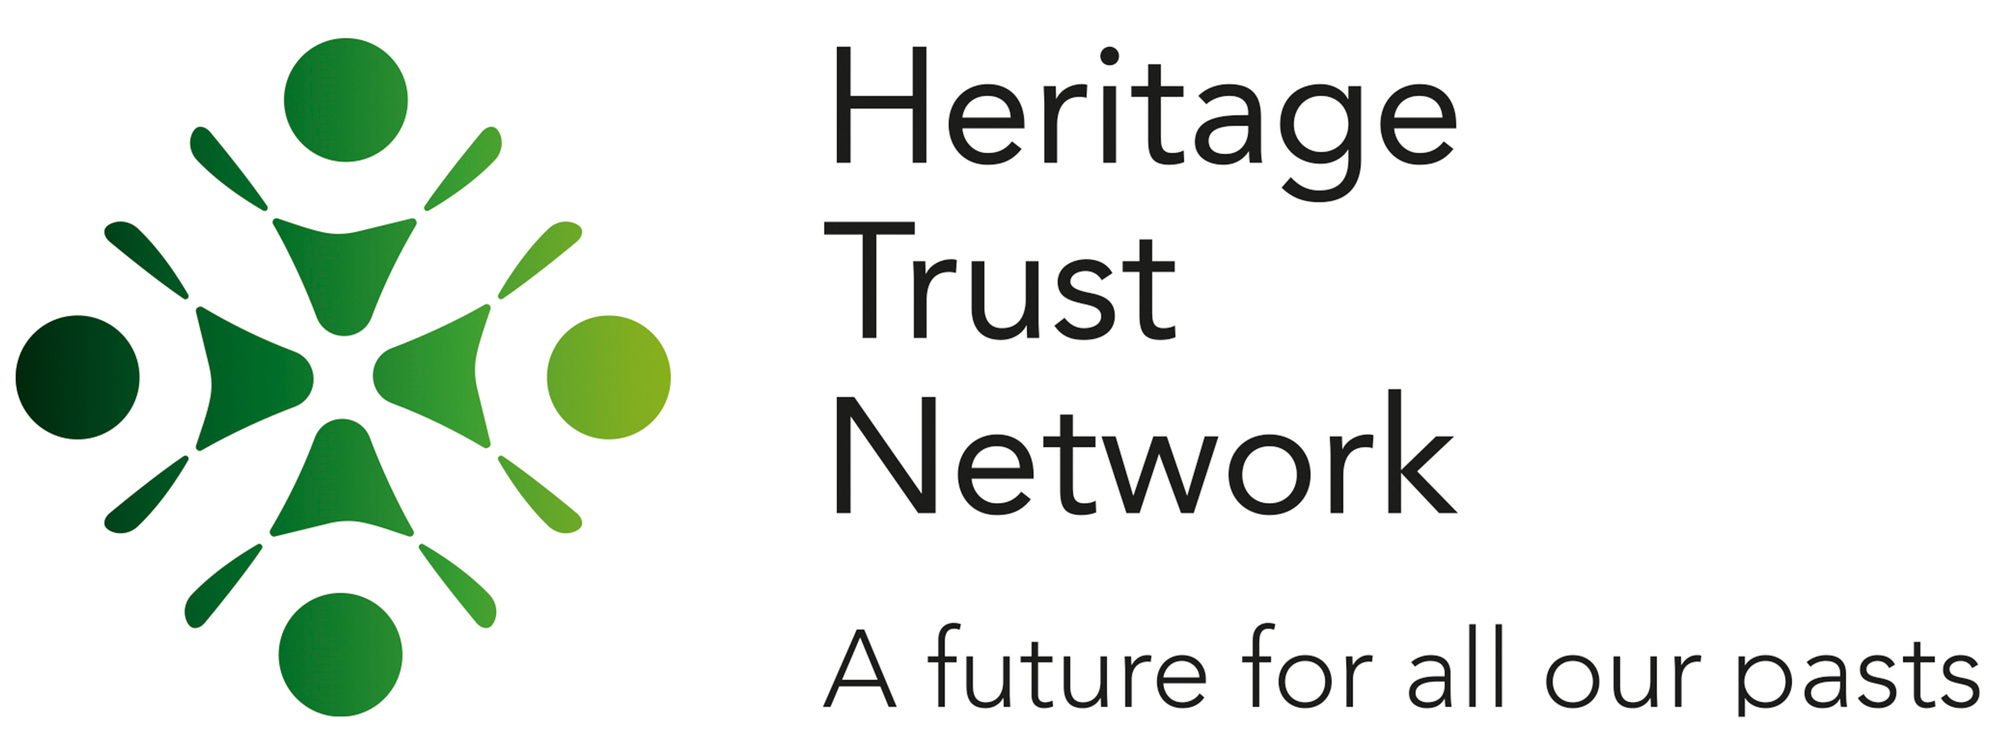 Buttress supports aspiring heritage professionals